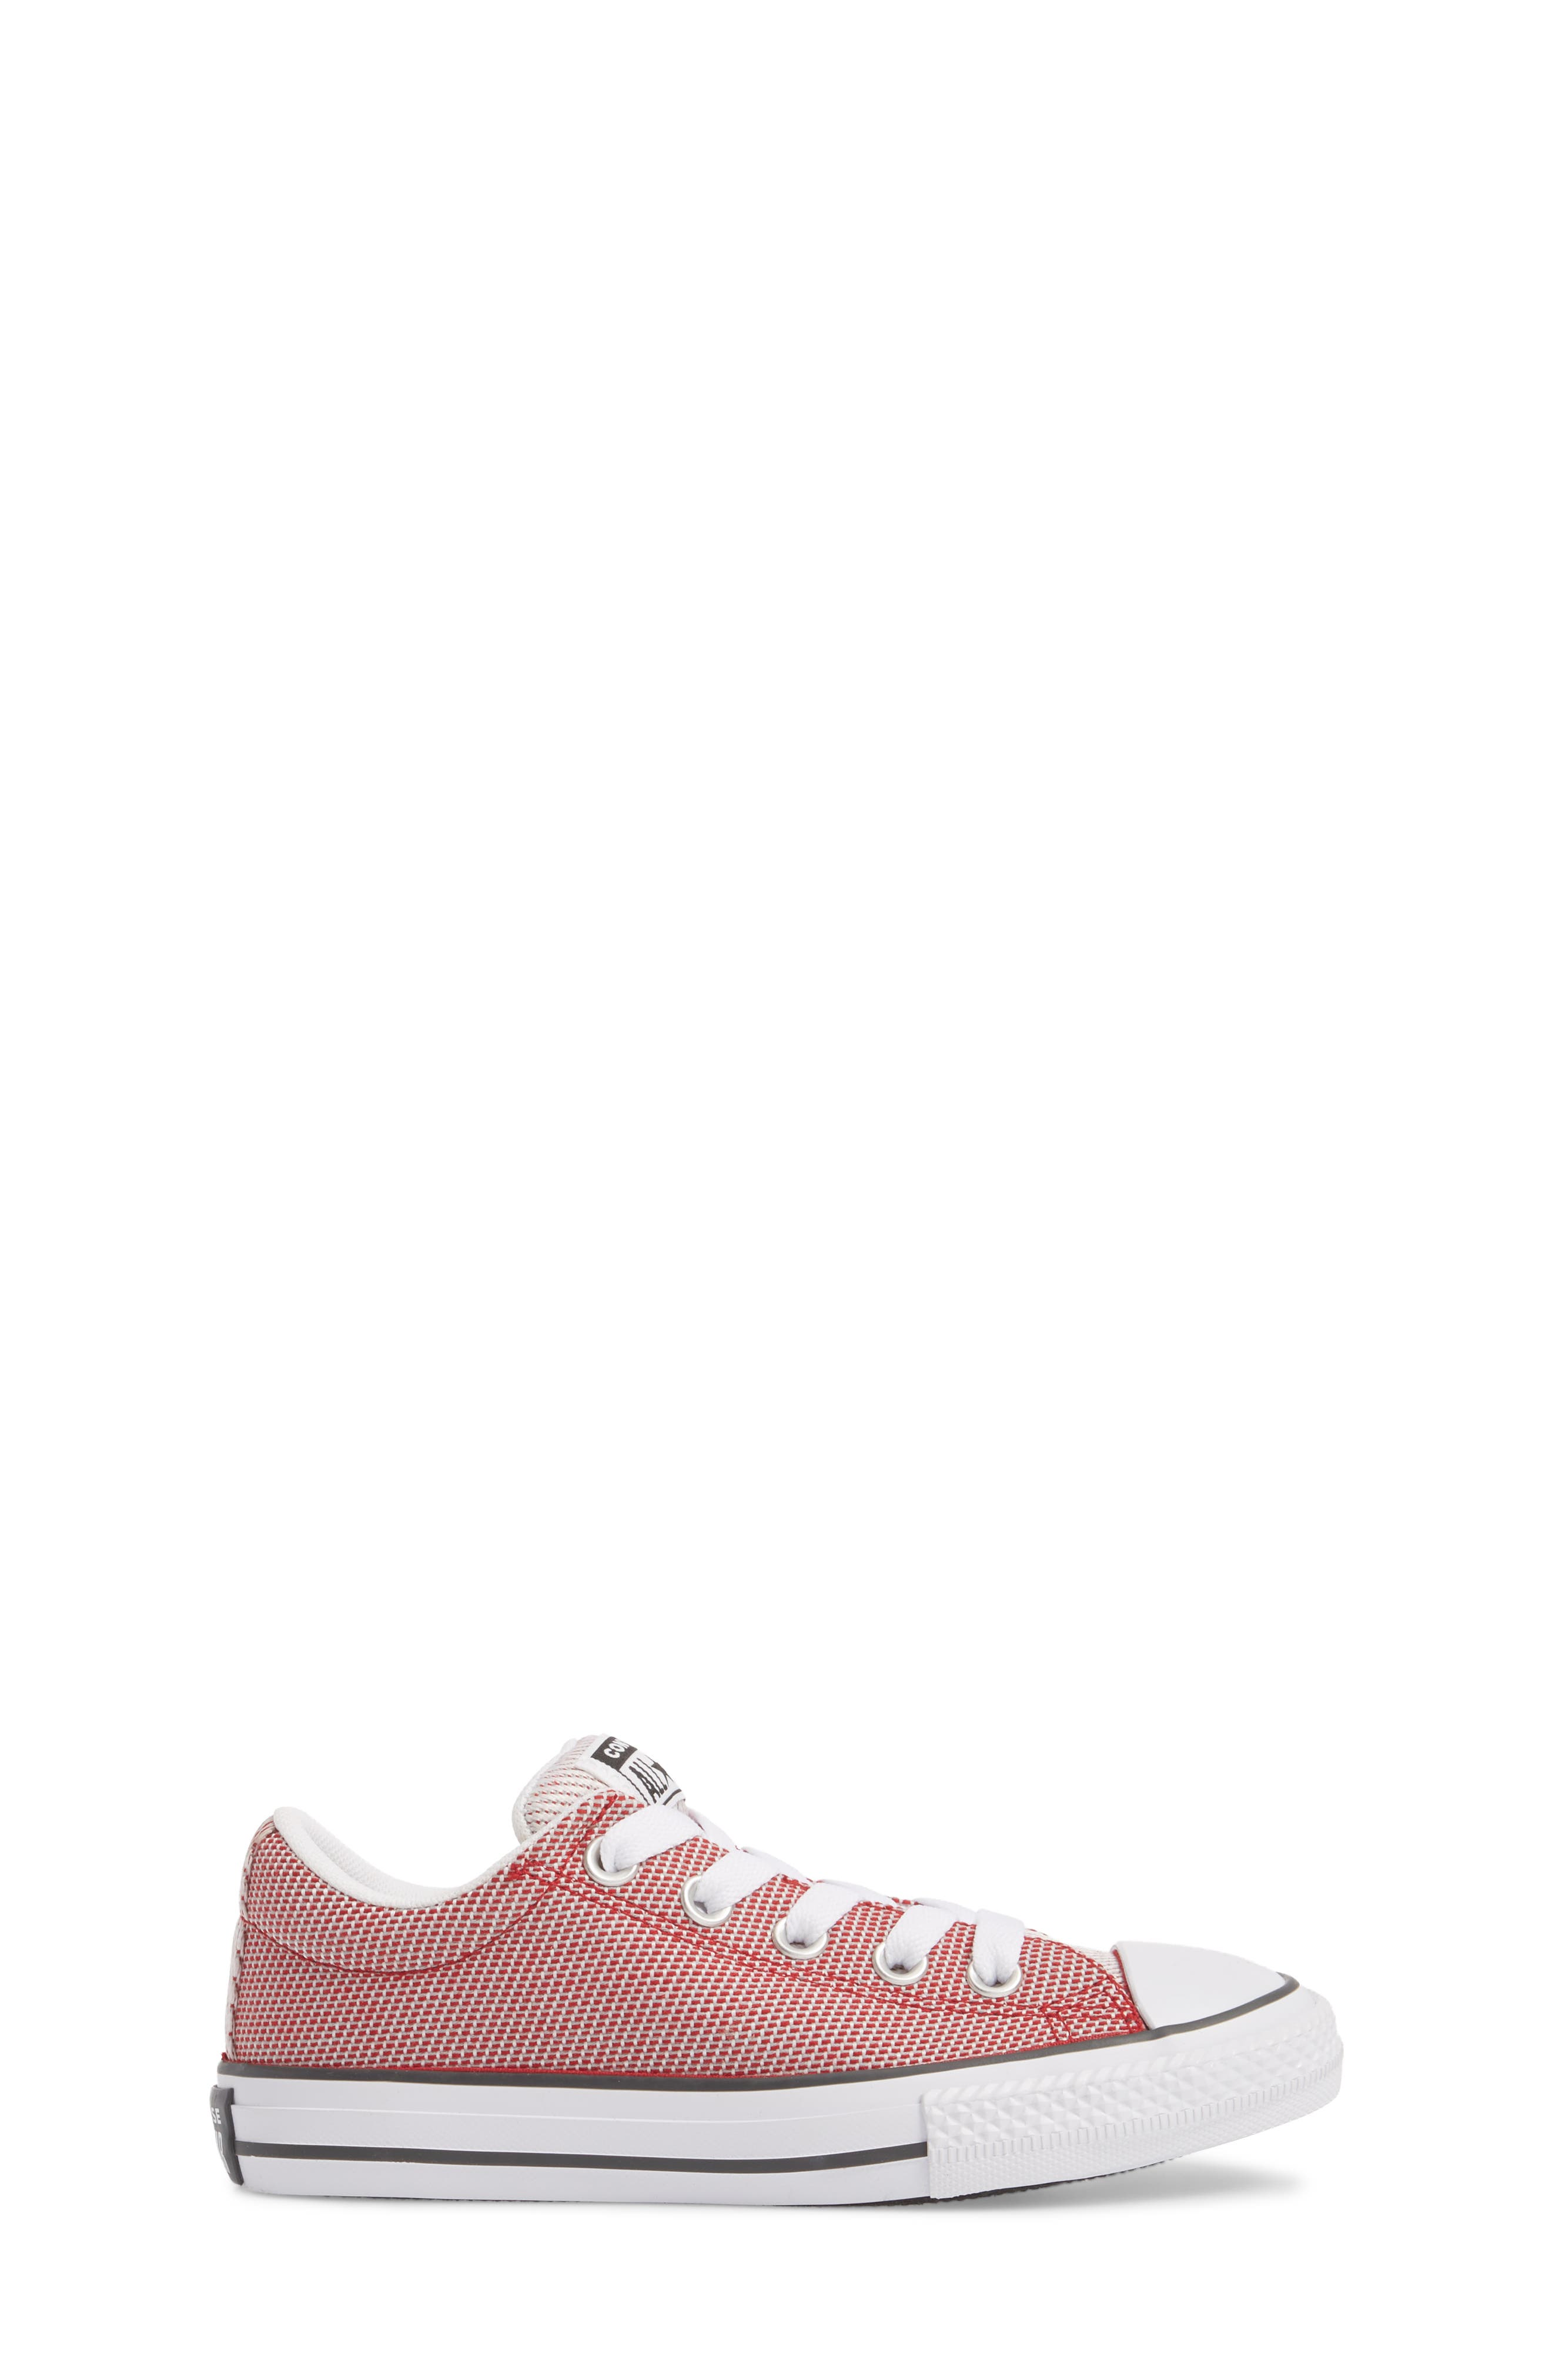 CONVERSE,                             Chuck Taylor<sup>®</sup> All Star<sup>®</sup> Woven Street Sneaker,                             Alternate thumbnail 3, color,                             600